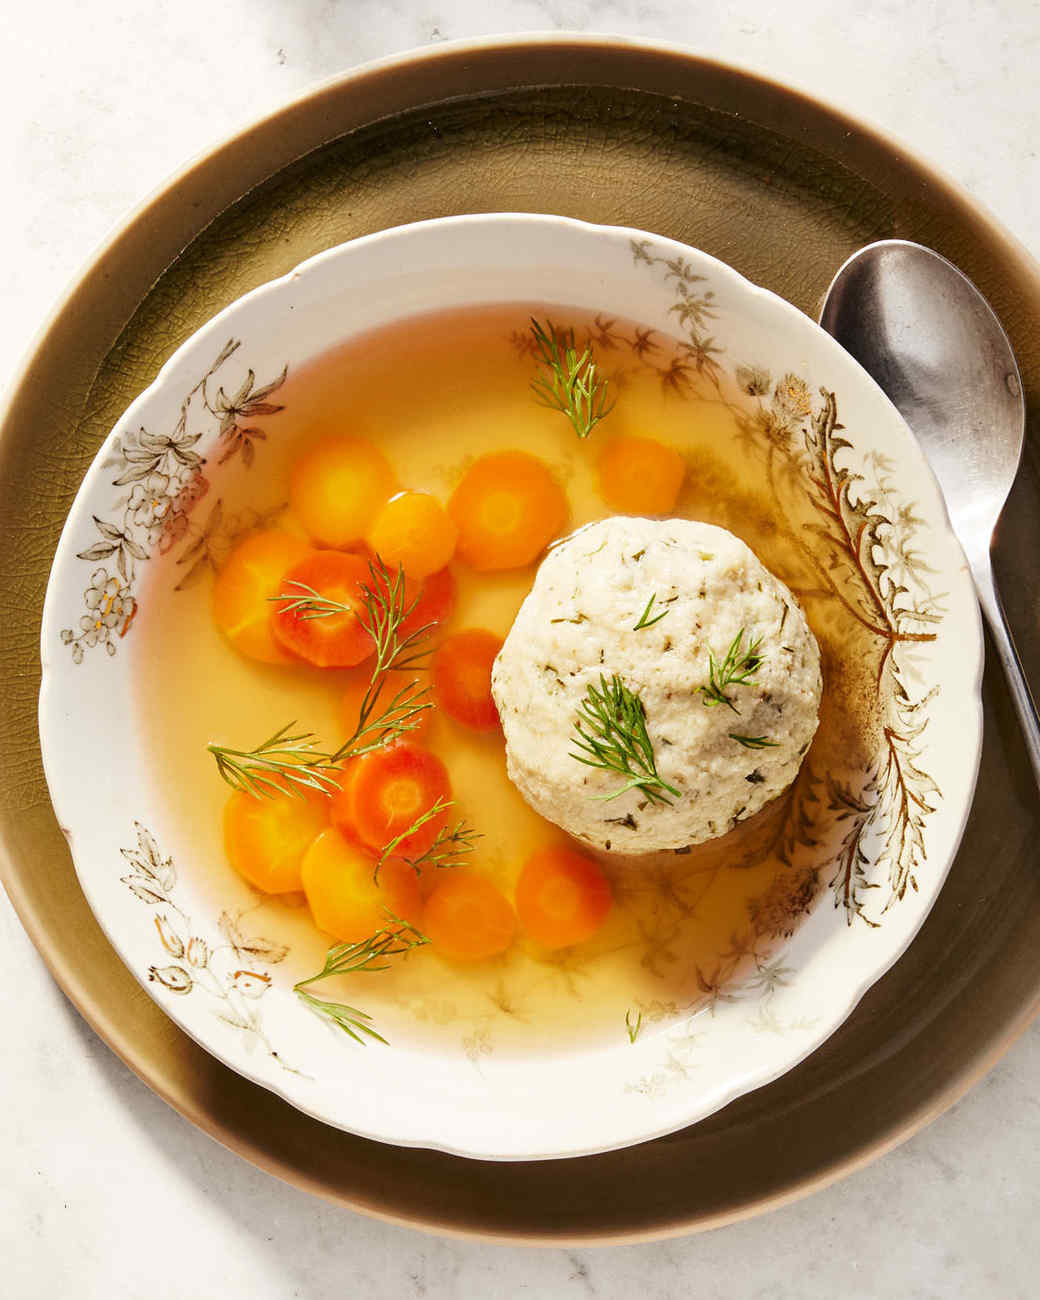 Passover Chicken Soup  Make the Most of Your Matzo Chametz Free Passover Recipes